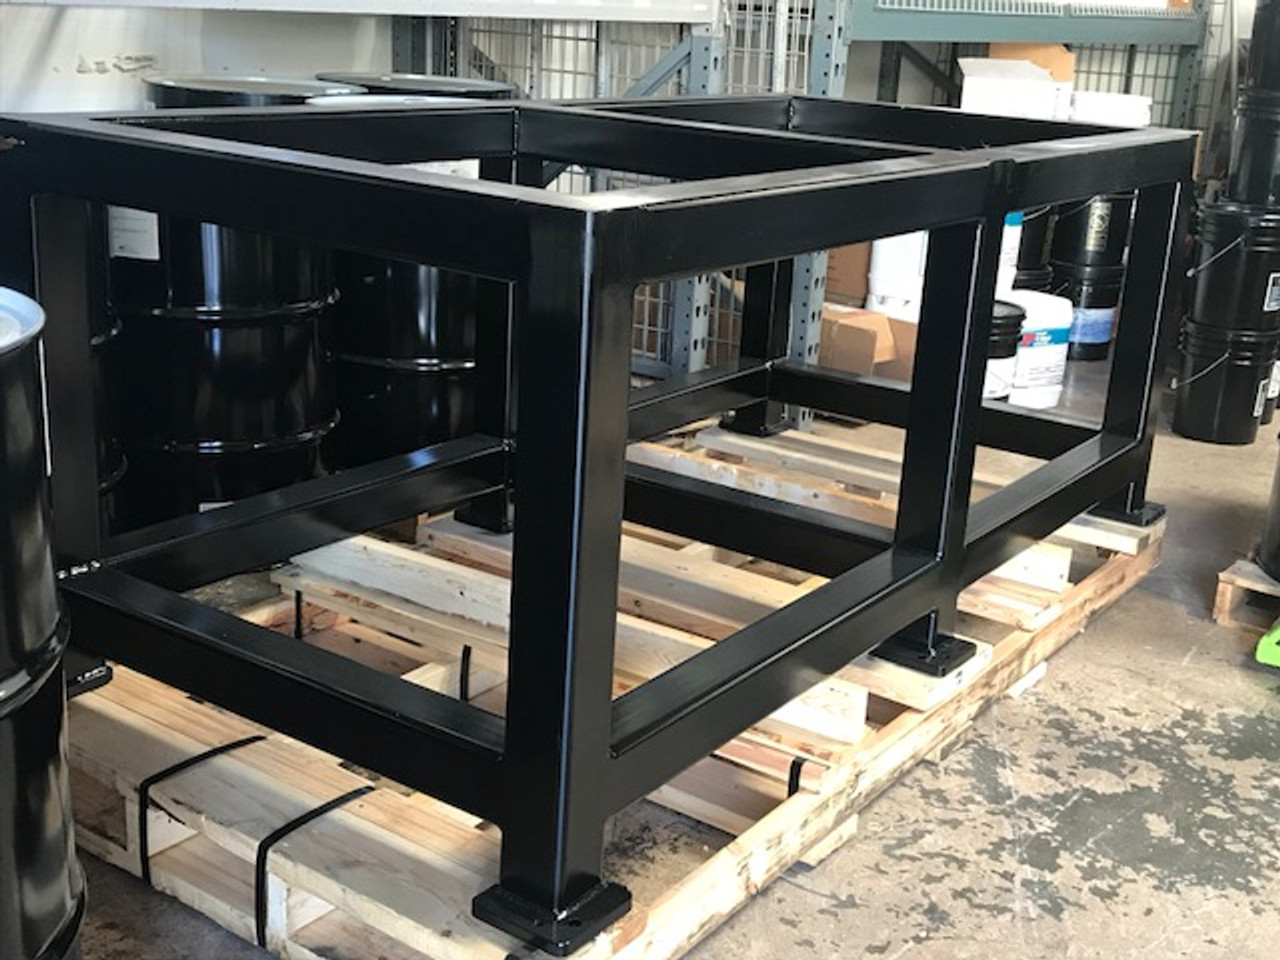 The MB Series Of Machine Bases Are Custom Fabricated For Build Pro and Seigmund Welding Plates